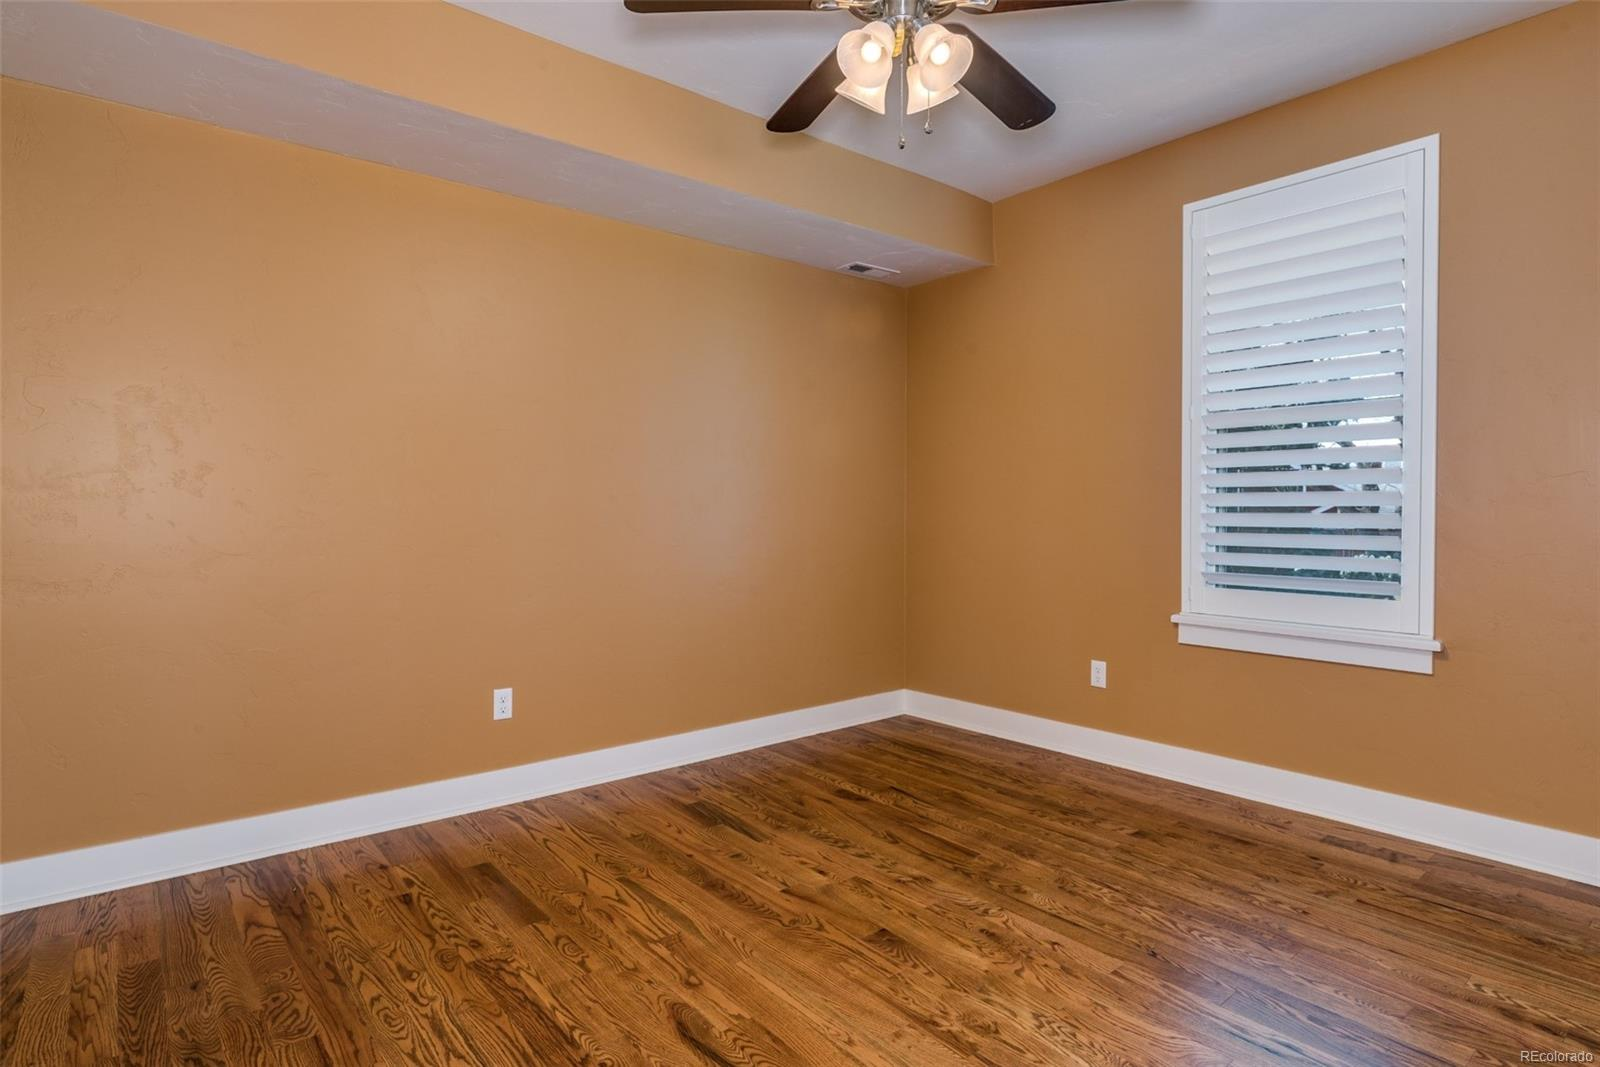 UPPER LEVEL BEDROOM #3 WITH CEILING FAN!